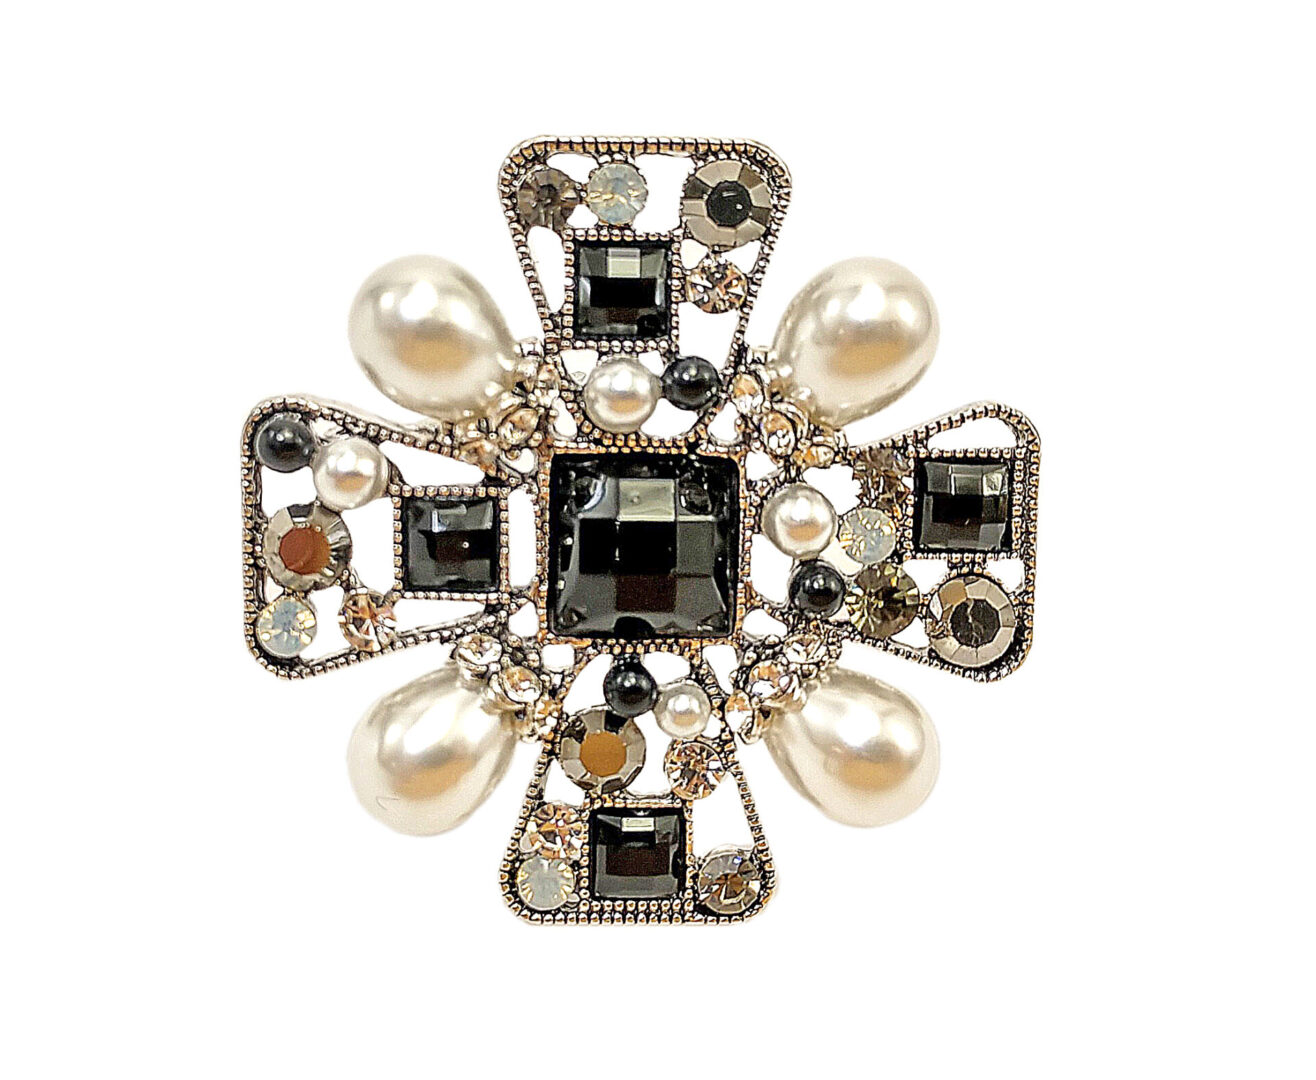 floral brooch with pearls and dark crystals